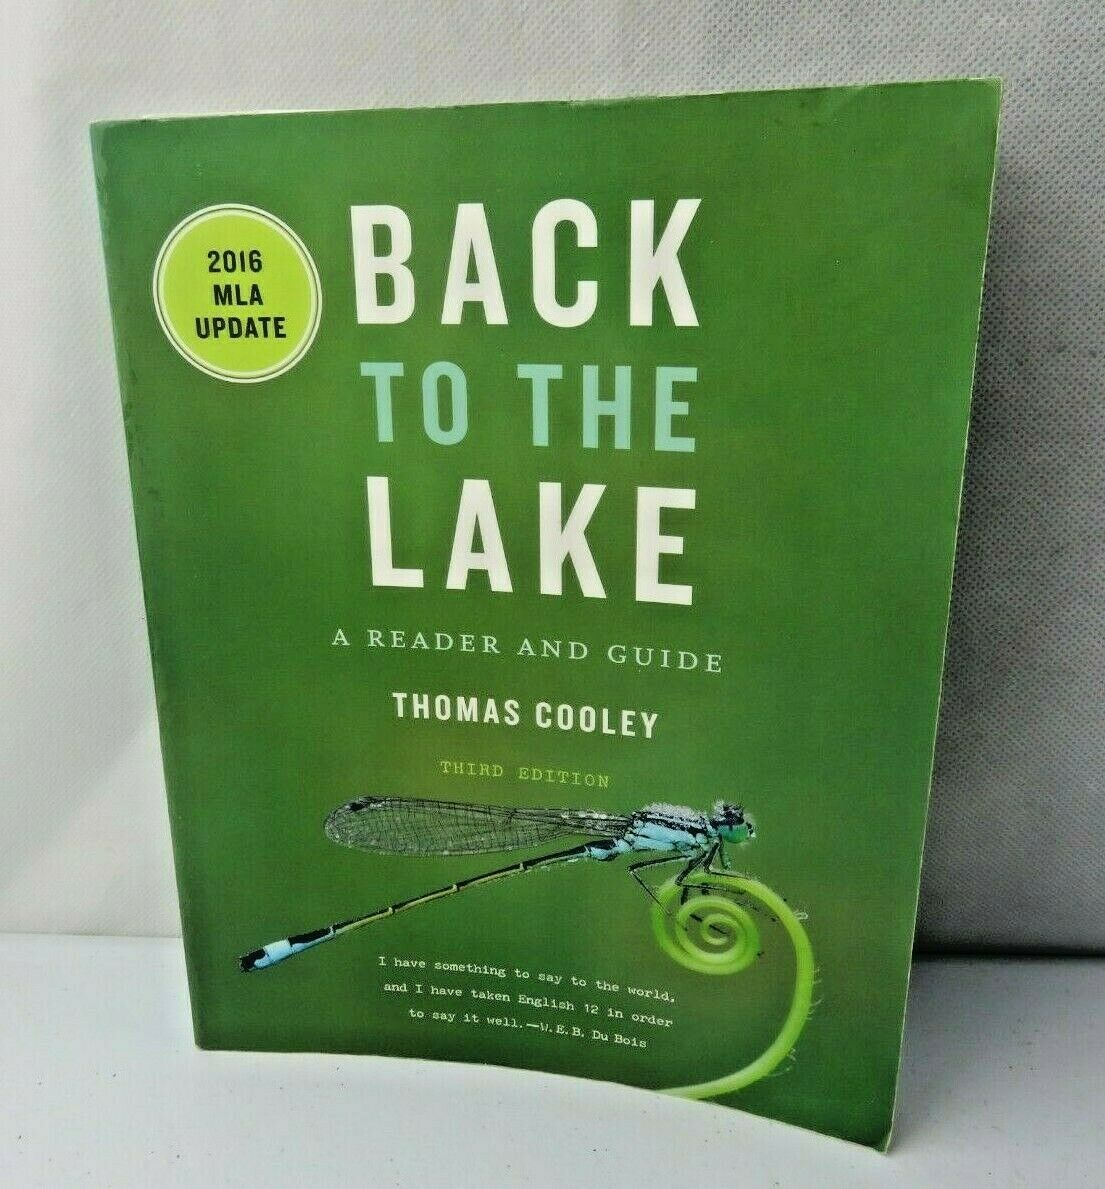 Primary image for Back to the Lake: A Reader and Guide, with 2016 MLA Update 3rd Edition 2016